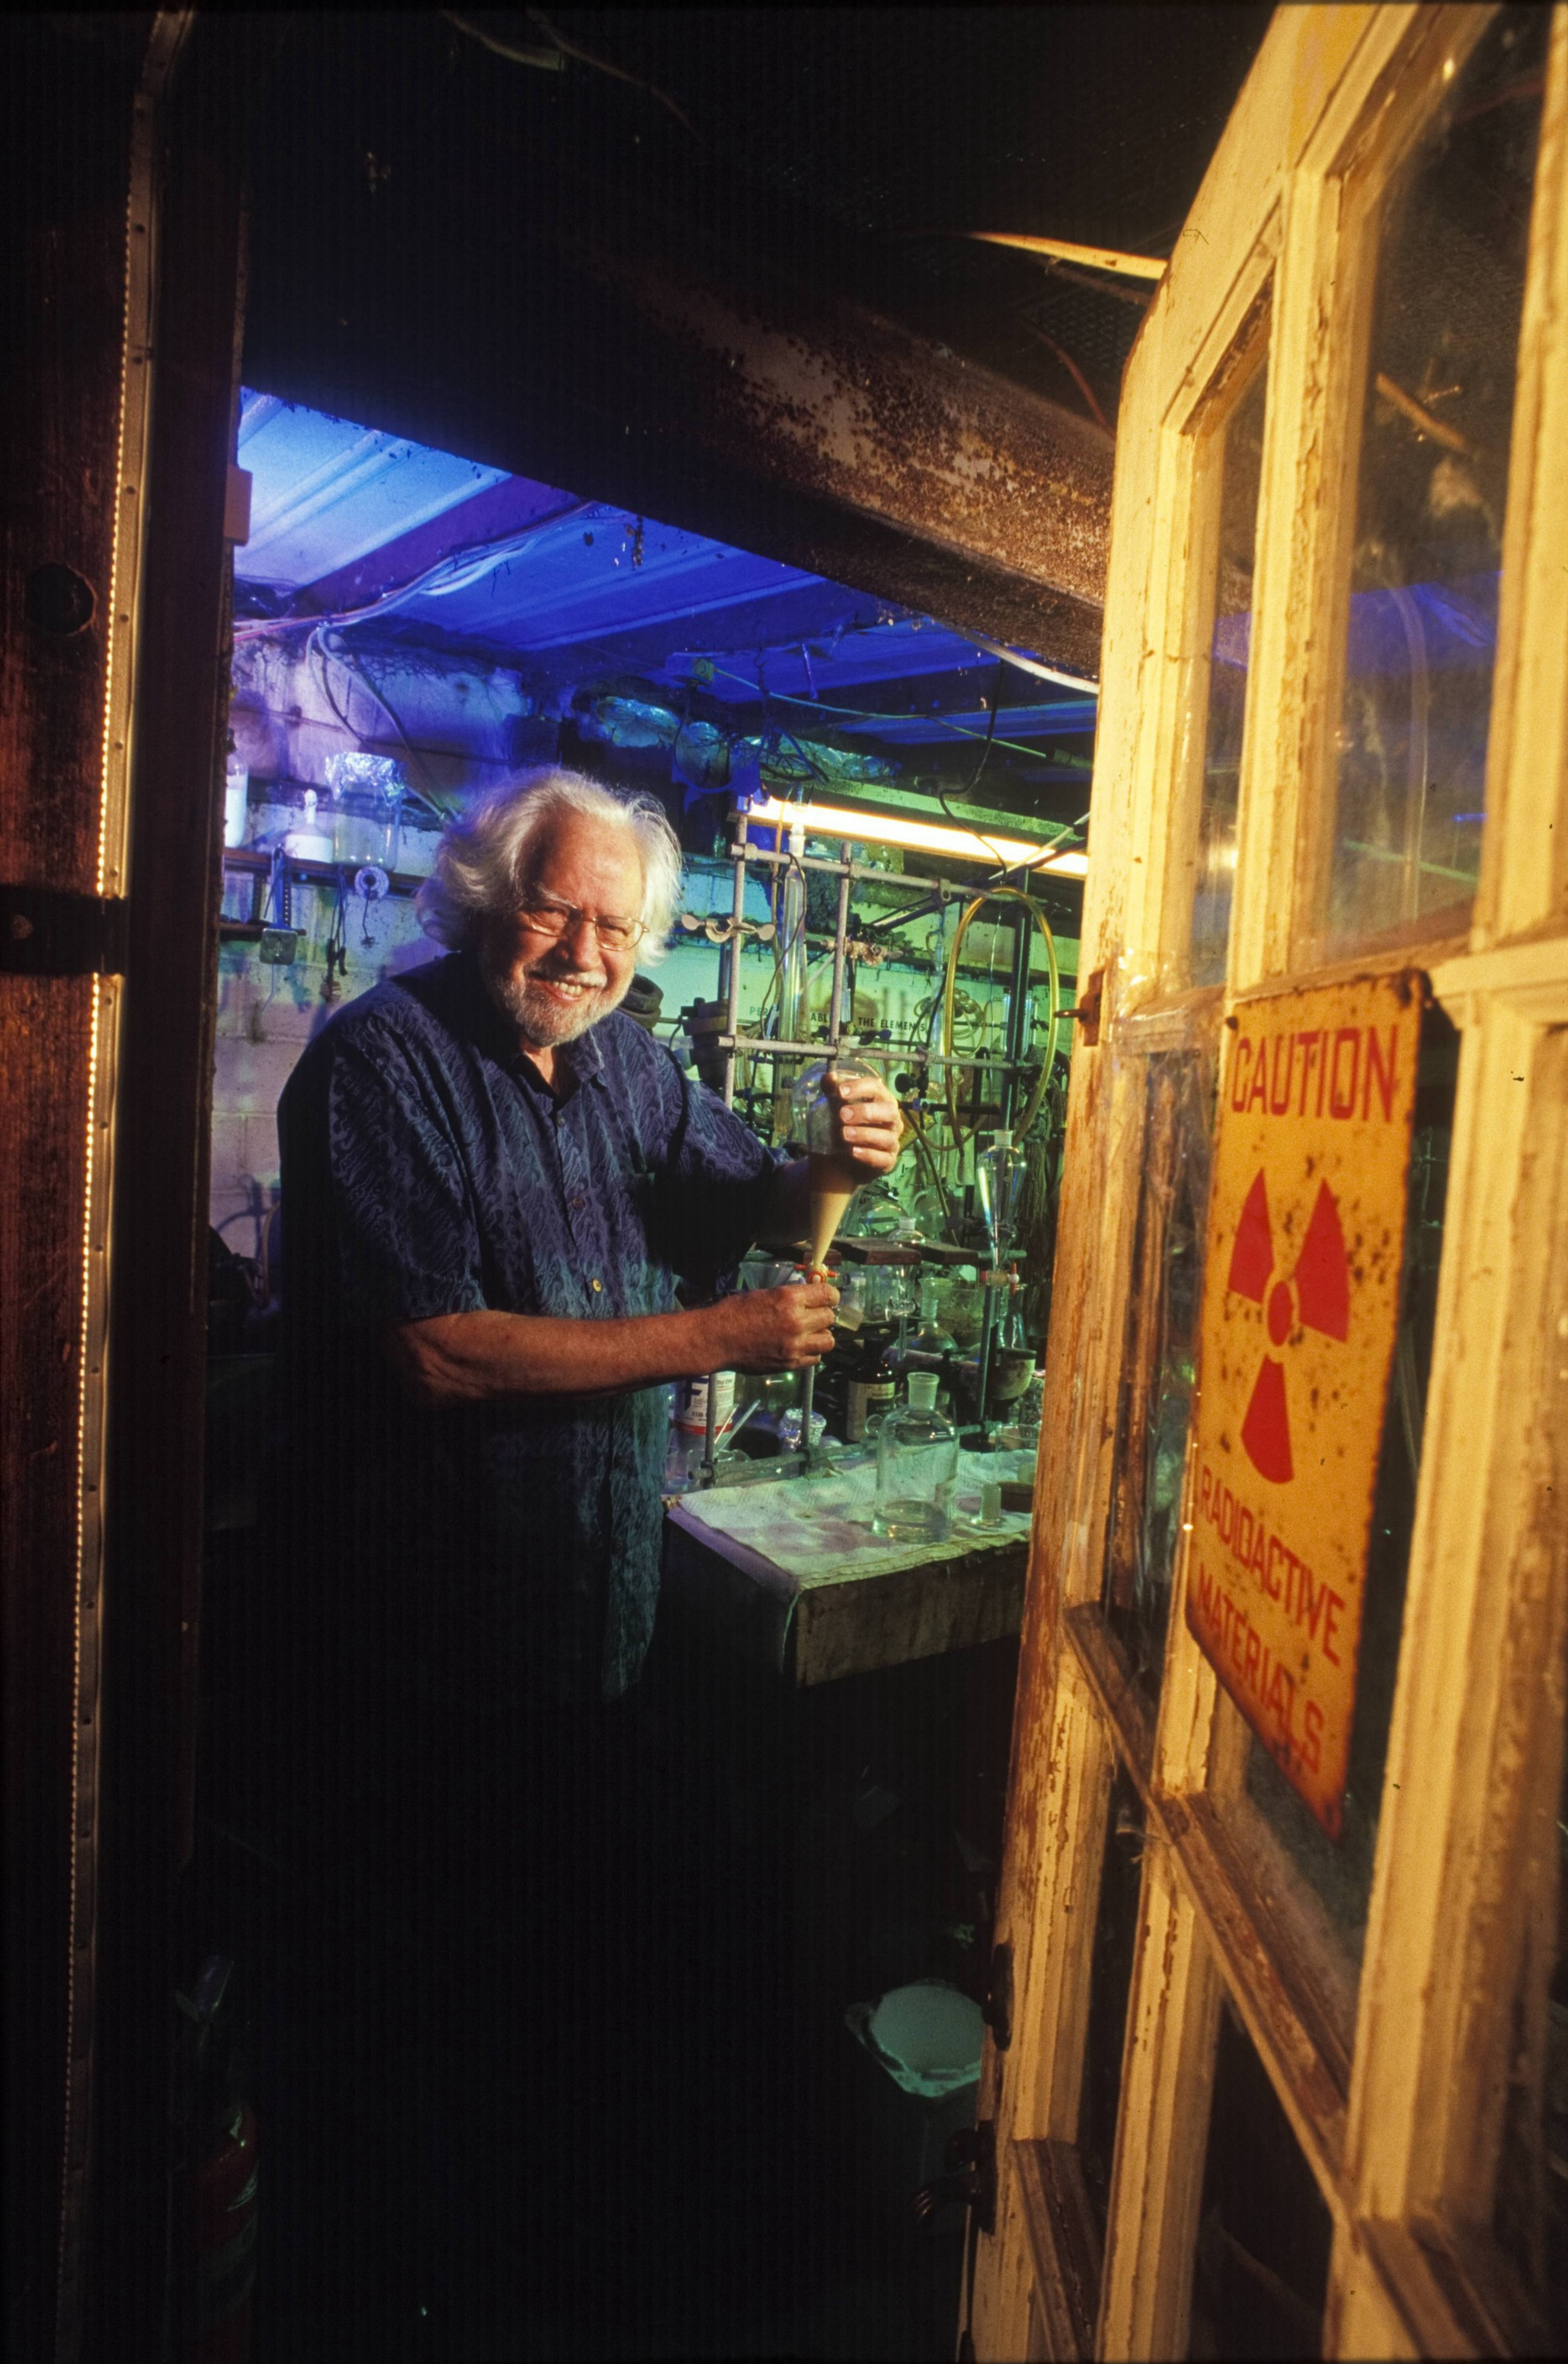 Psychopharmacologist Alexander 'Sasha' Shulgin, developer of MDMA, at his home laboratory in Lafayette, California, in 2002. (Anthony Pidgeon/Getty Images)